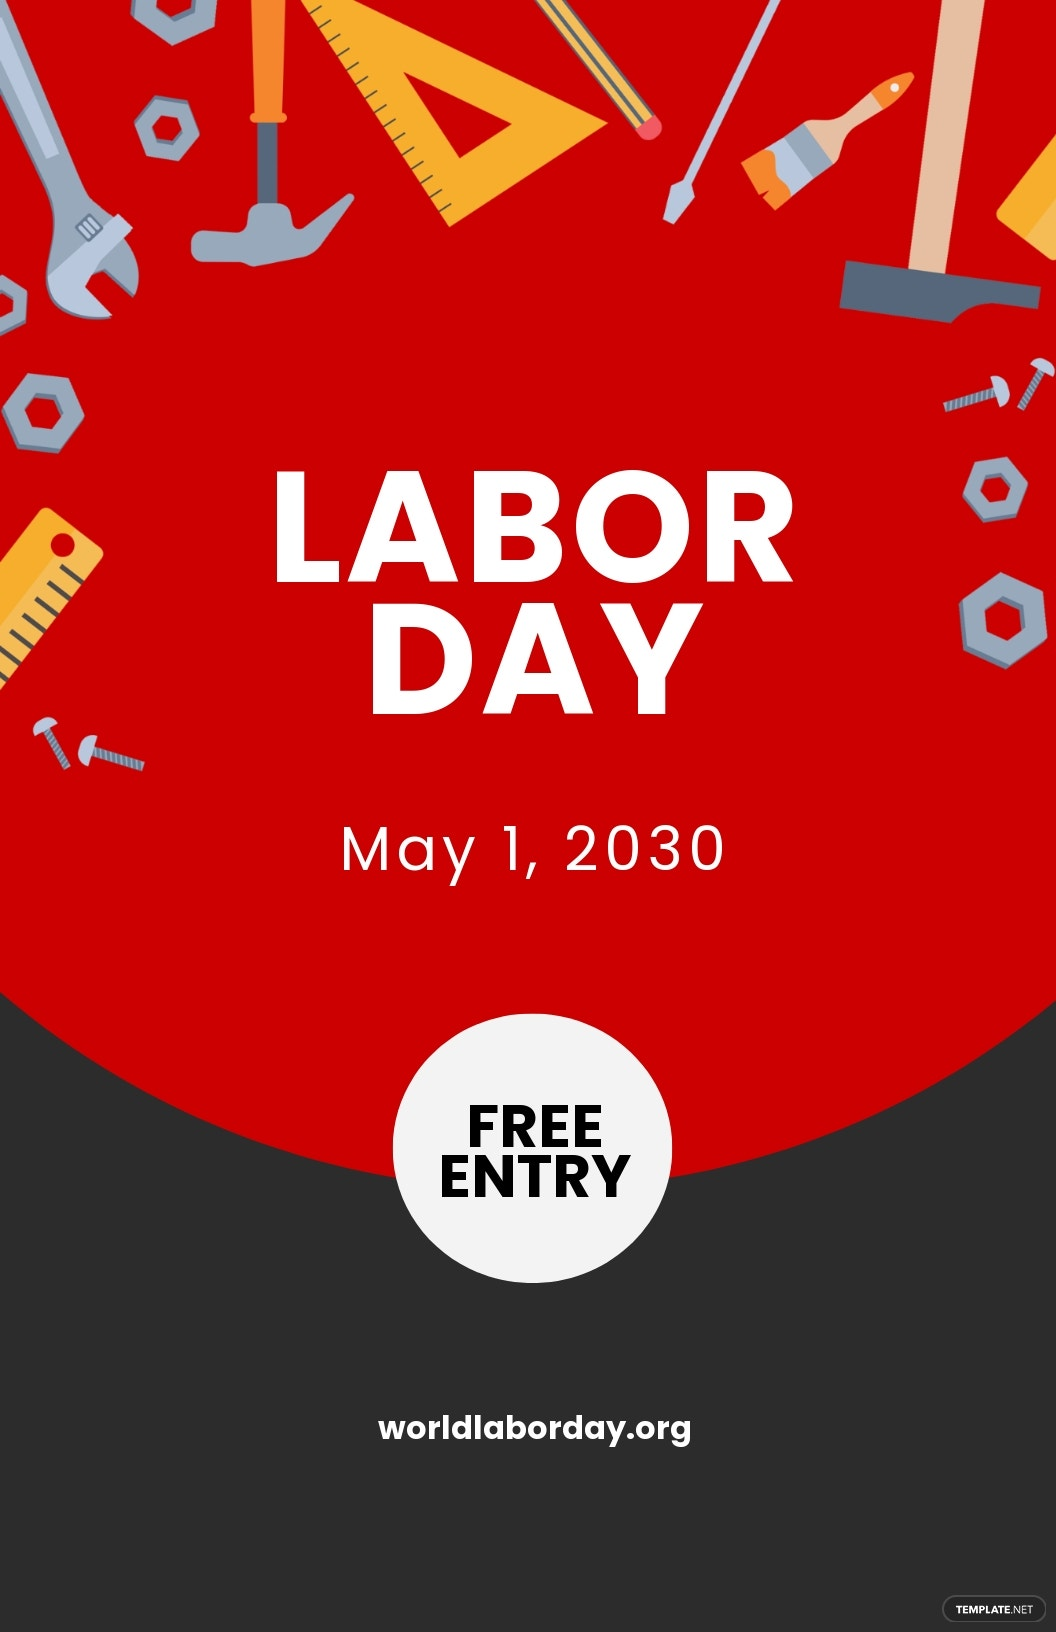 Free Labor Day Poster Template.jpe